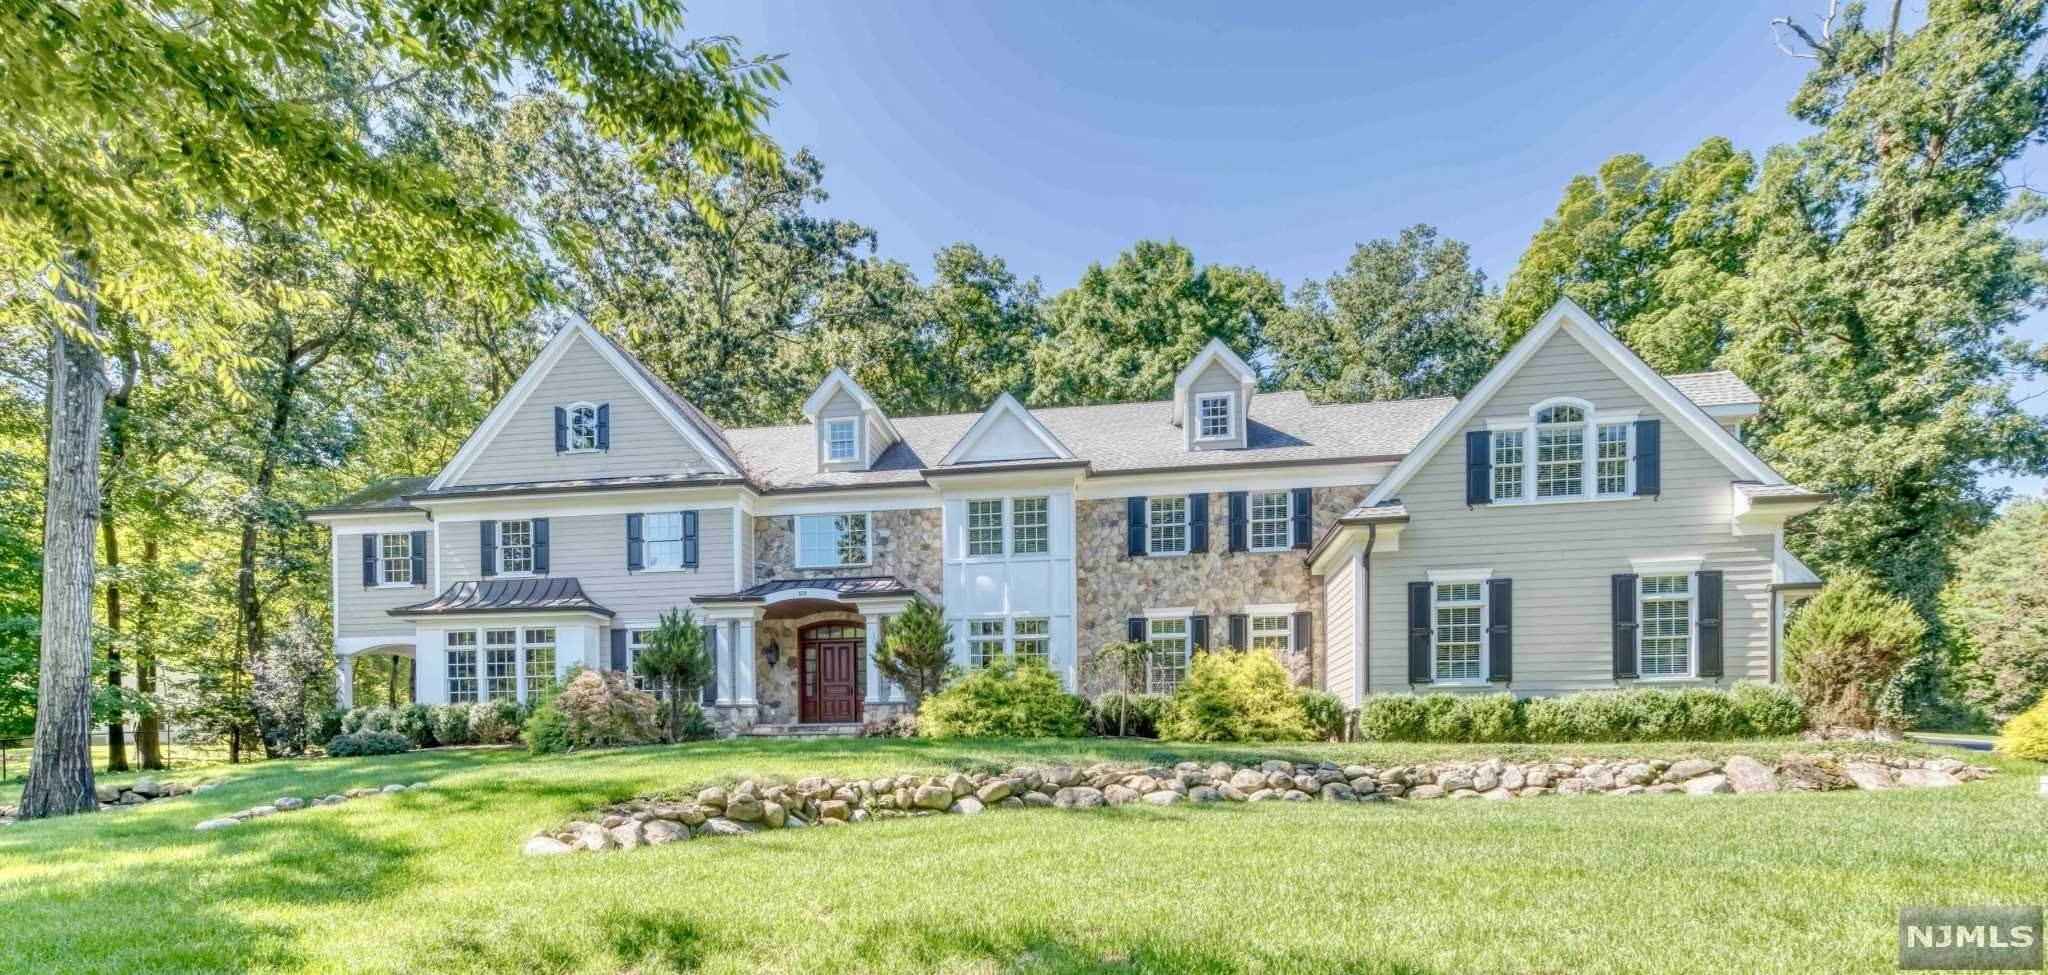 Single Family Home for Sale at 650 Dakota Trail Franklin Lakes, New Jersey,07417 United States